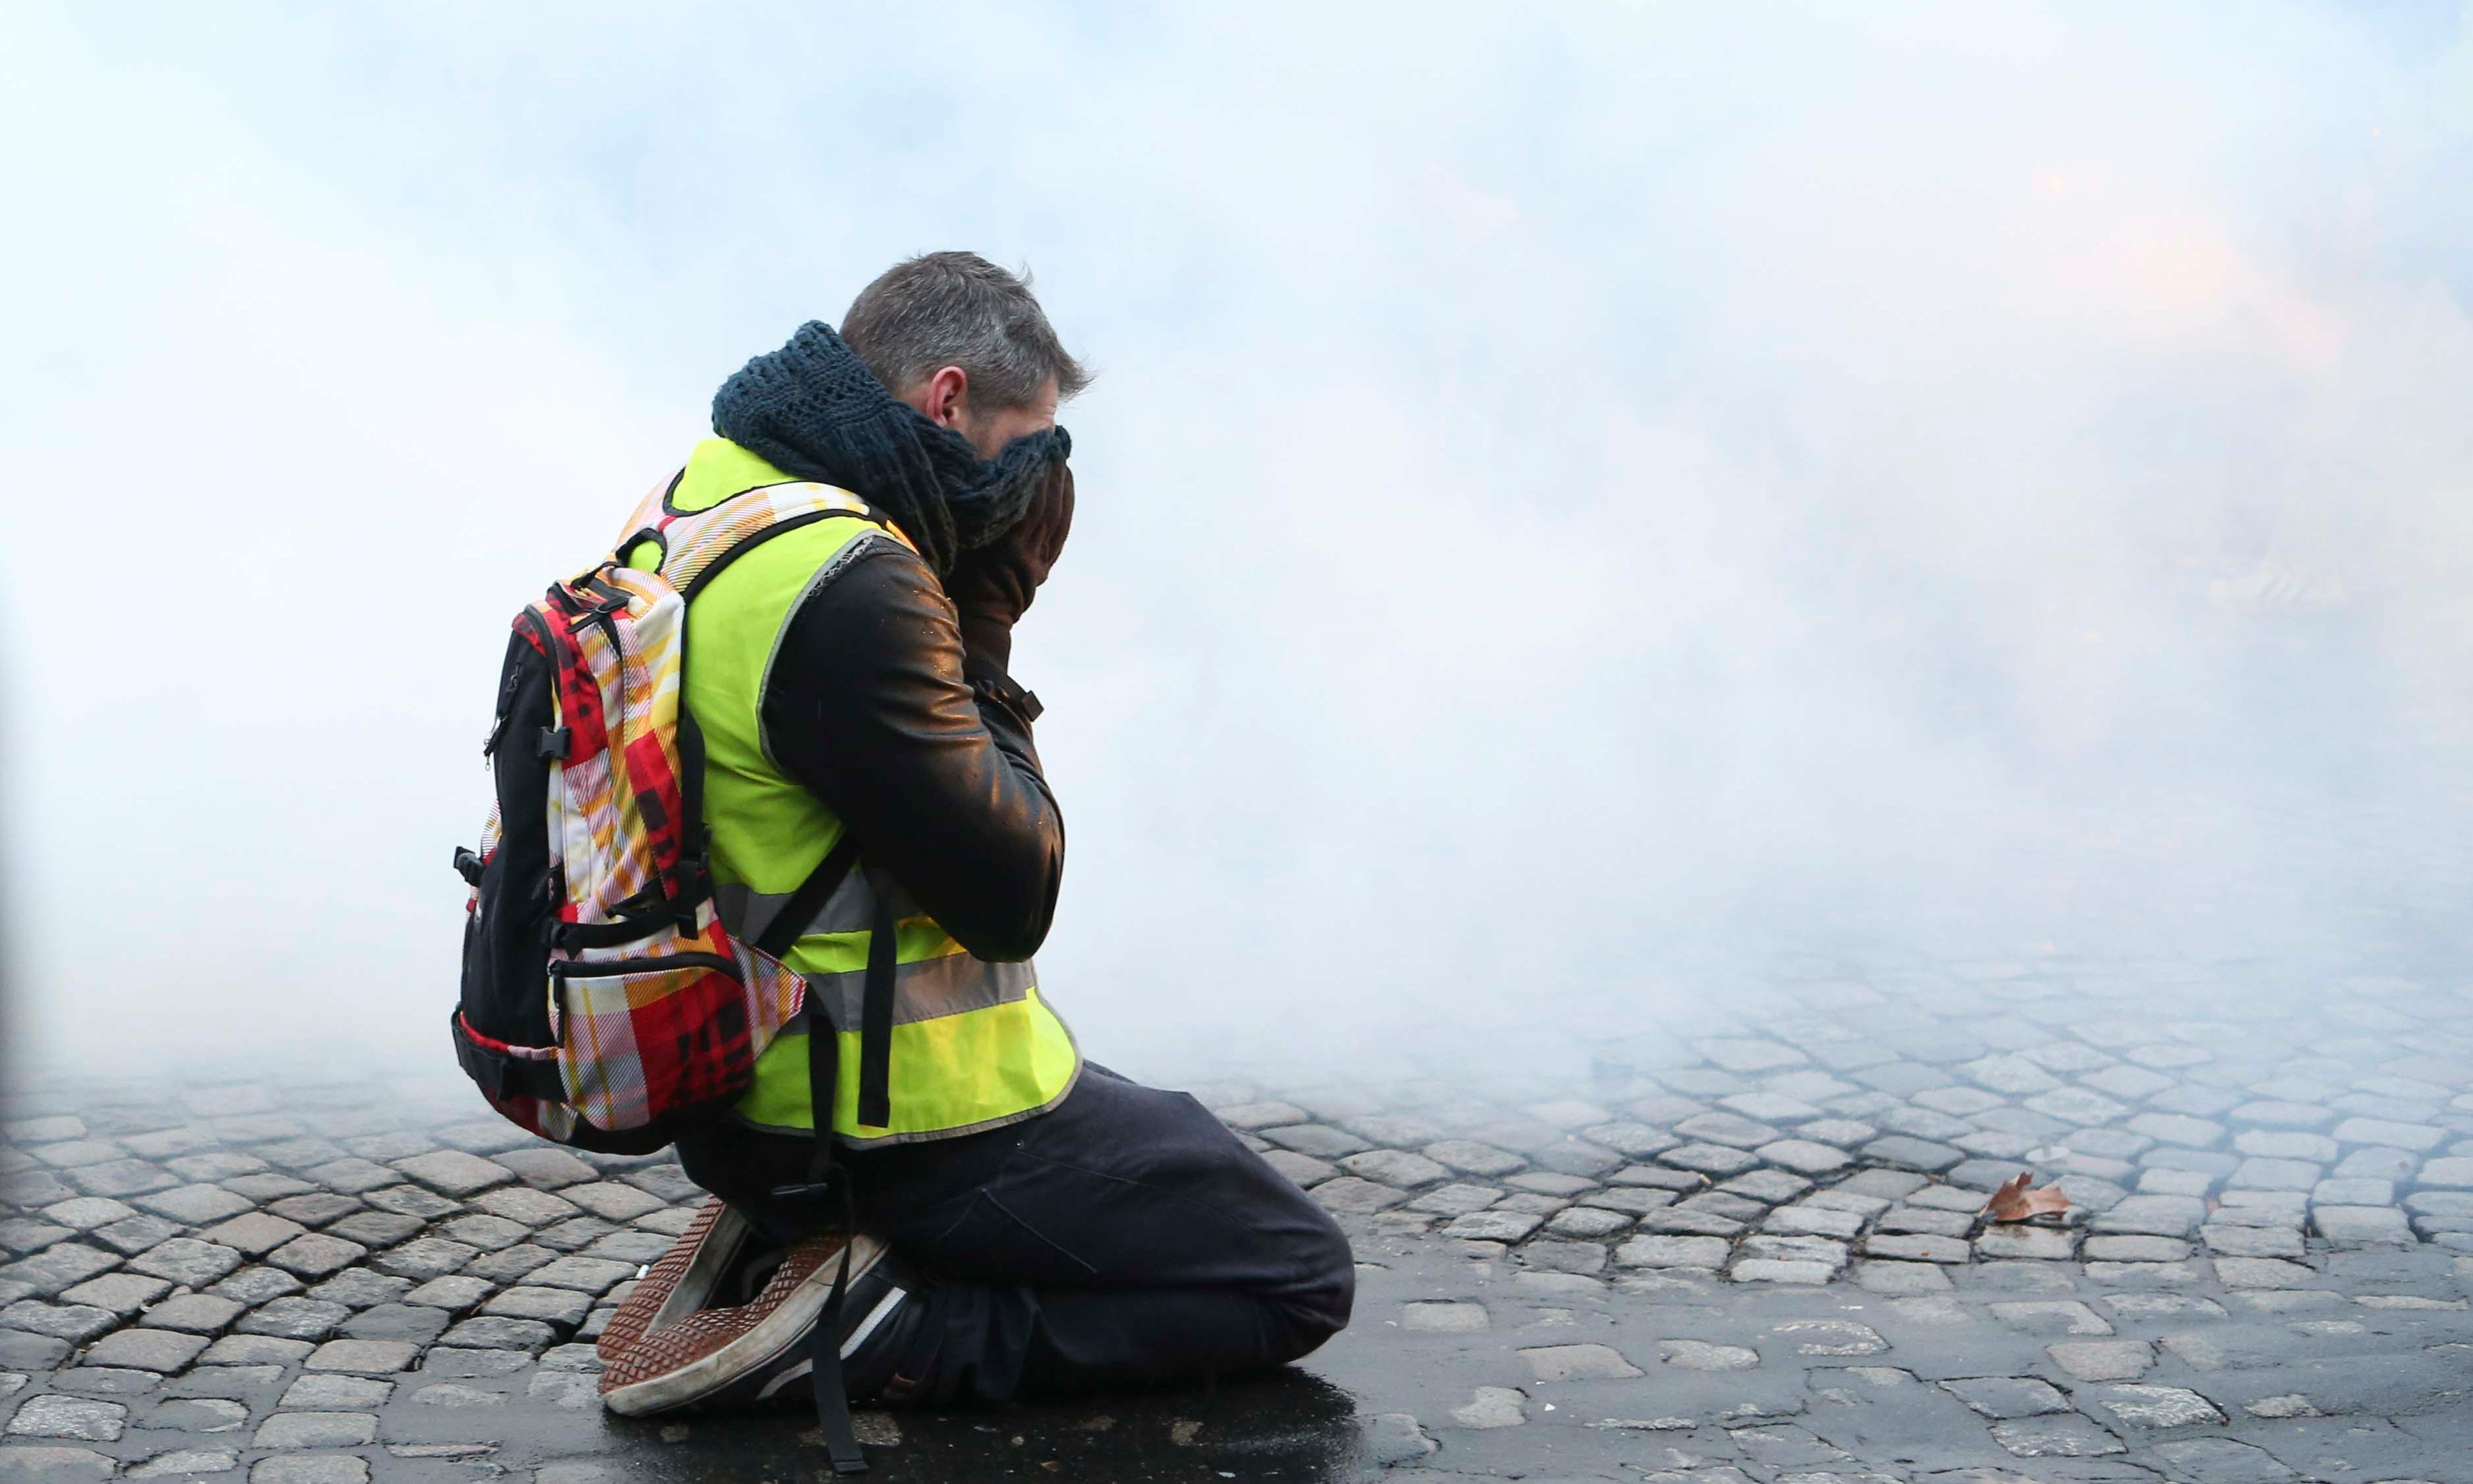 Gilets jaunes: grassroots heroes or tools of the Kremlin?